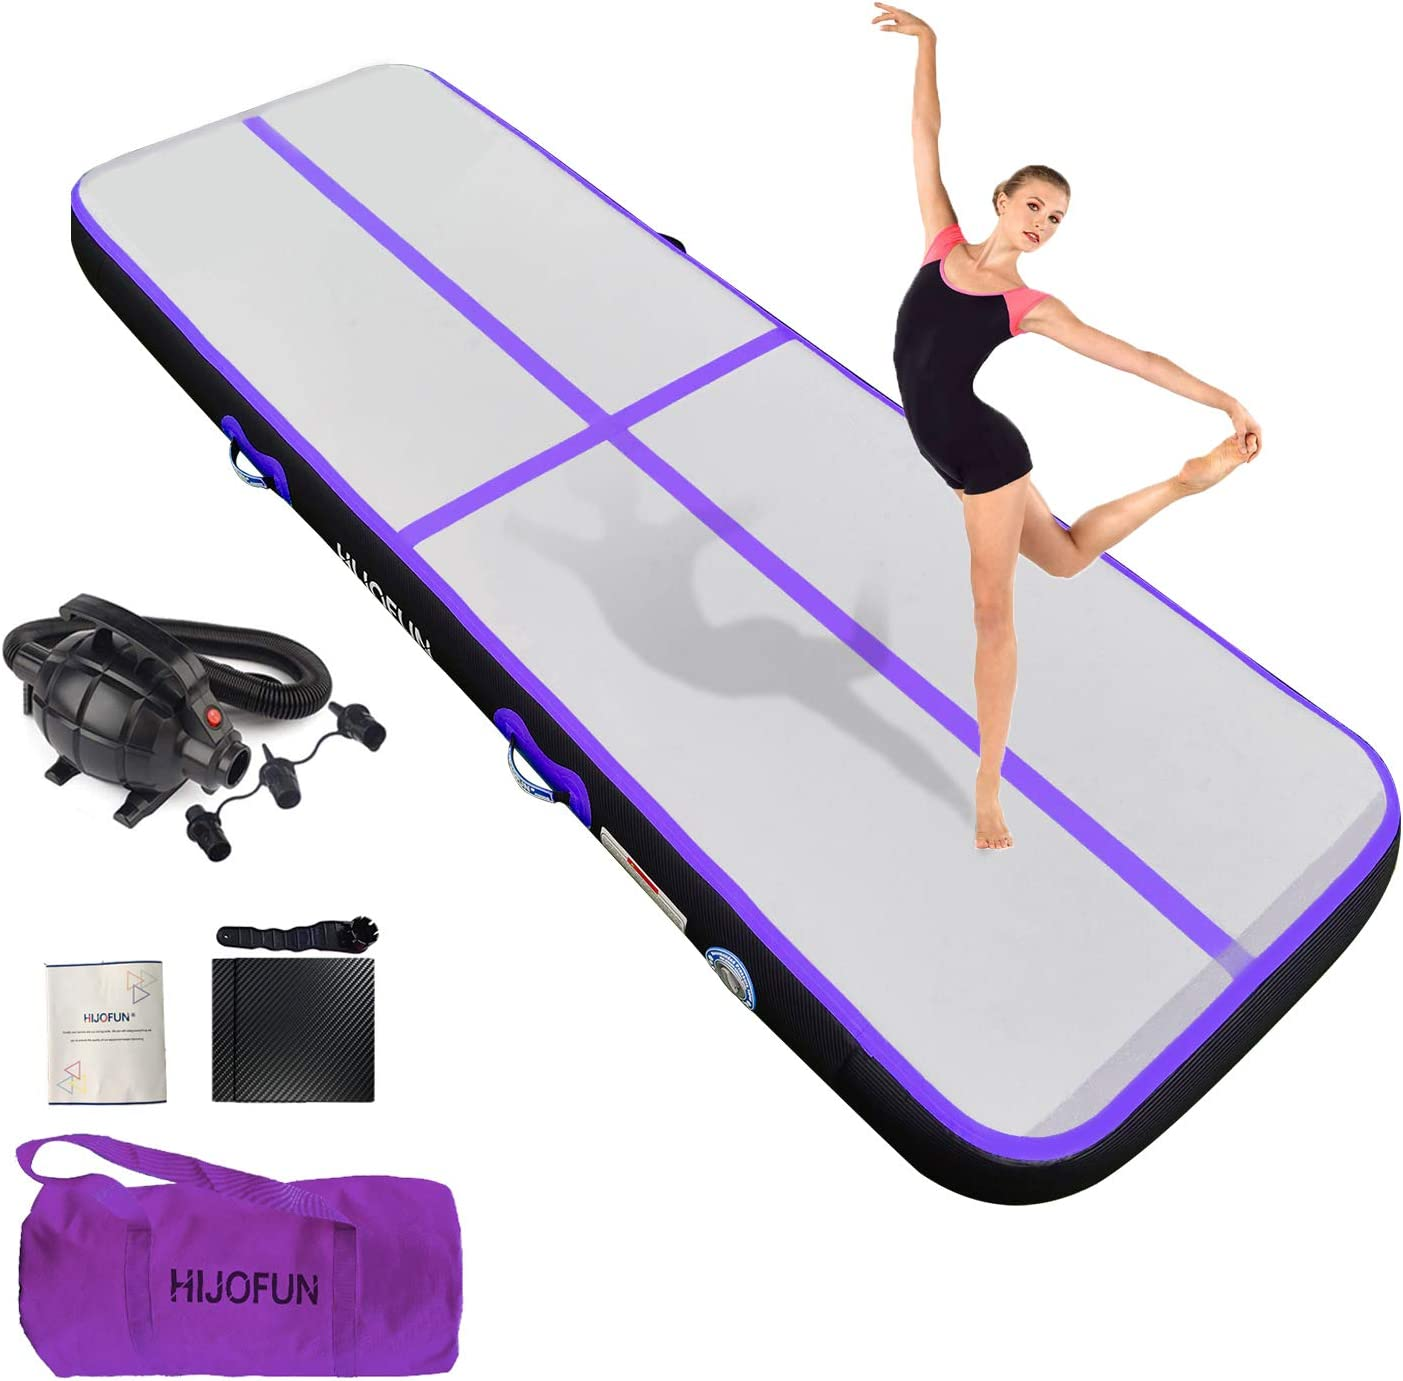 HIJOFUN Premium Inflatable Air Tumbling Track for Gymnastics Tumble Mat 10ft 13ft 16ft 20ft 4 in 8 inces Thick with Electric Air Pump for Home Kids/Gym/Yoga/Training/Cheerleading/Outdoor/Pool/Beach